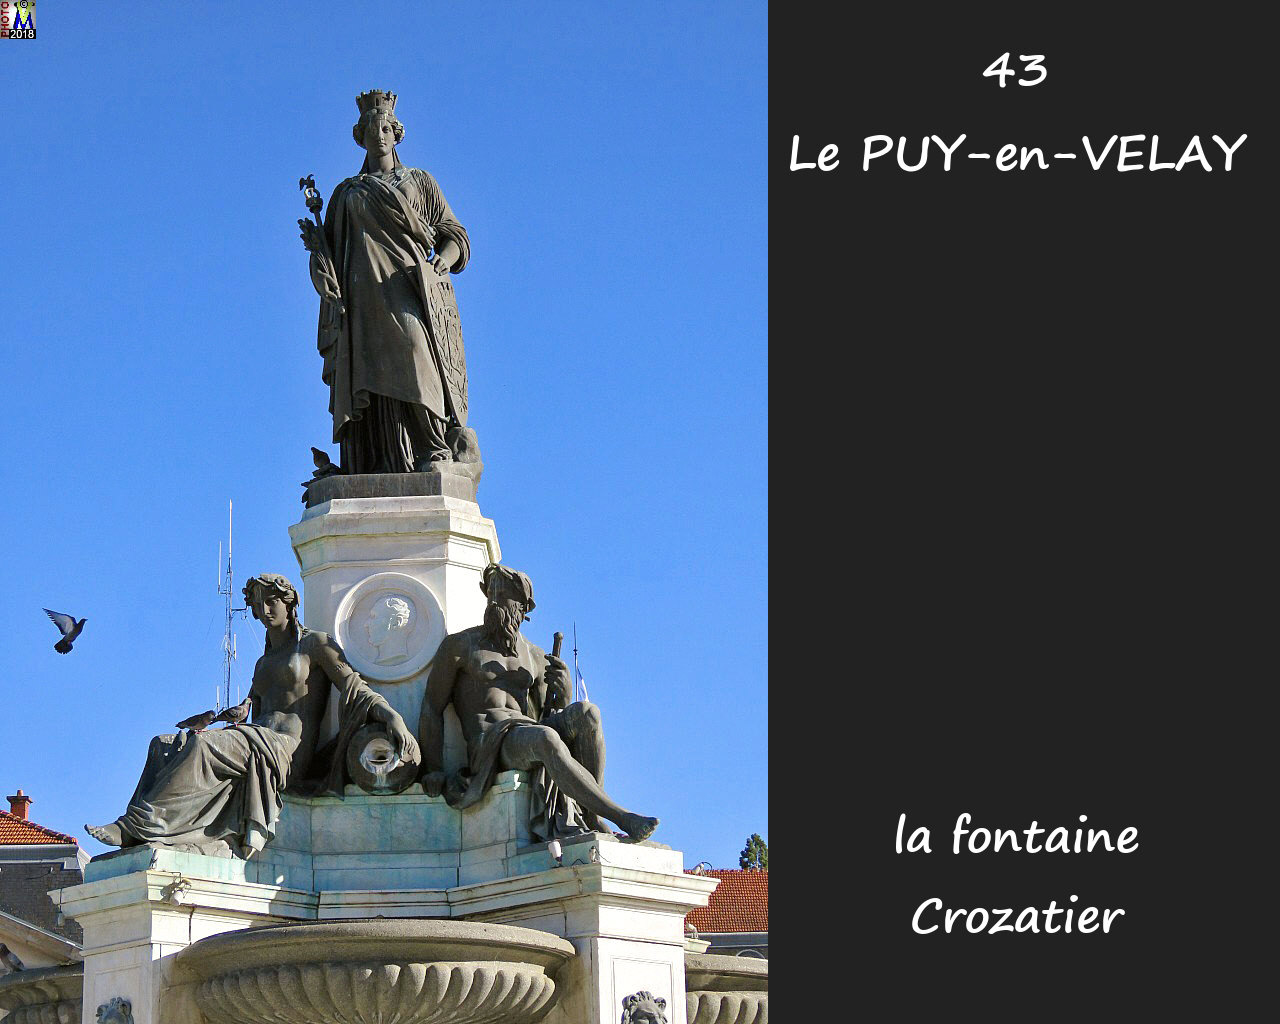 43PUY-EN-VELAY_fontaine_104.jpg